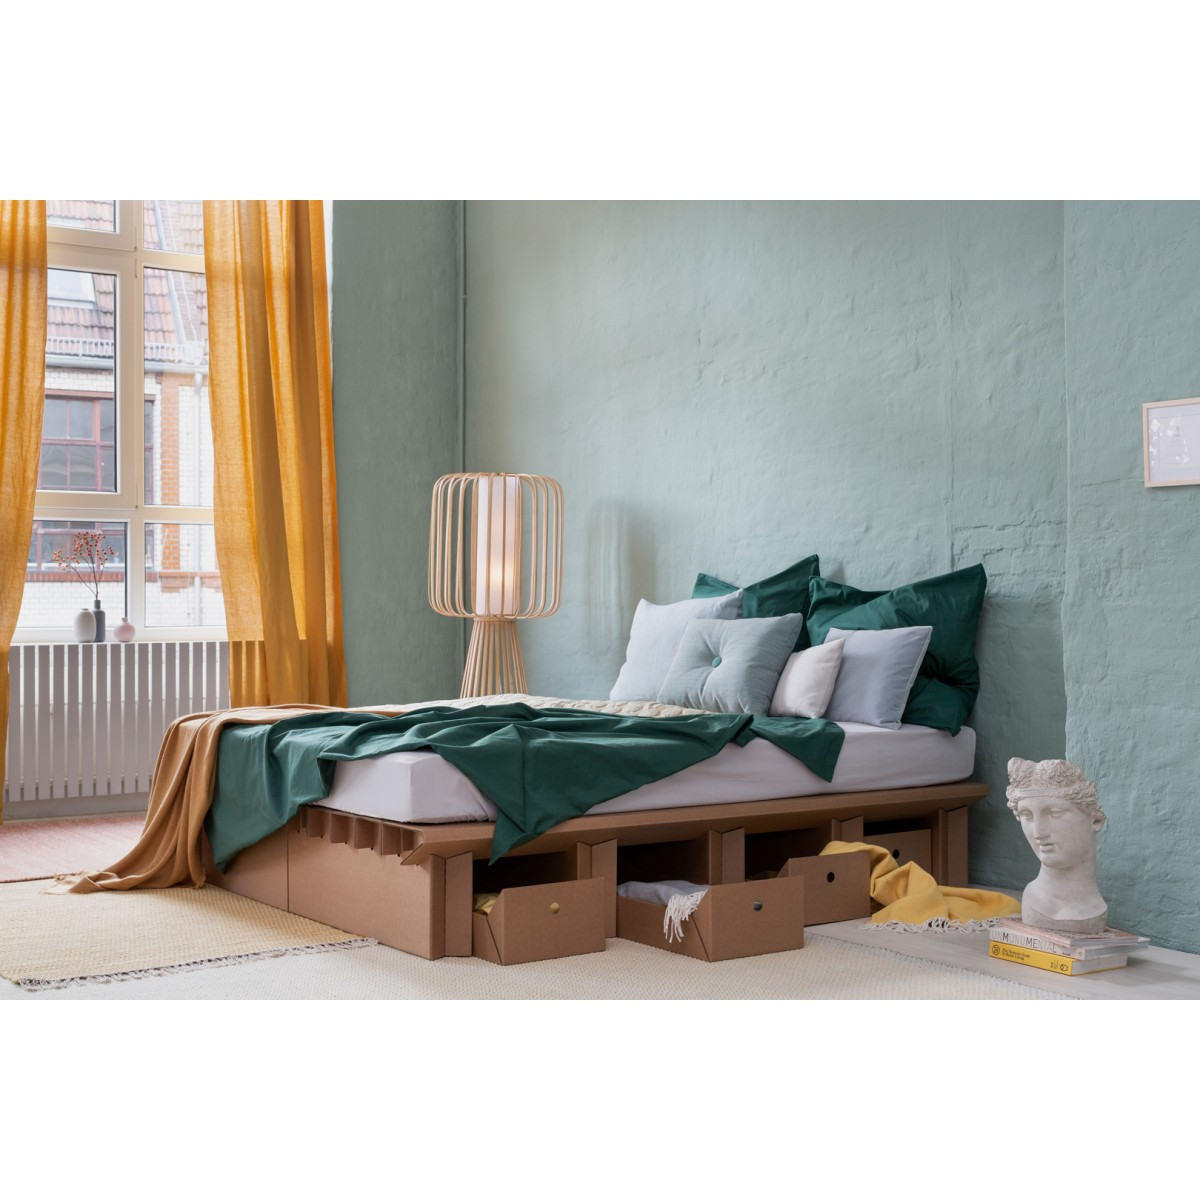 STANGE DESIGN Pappbett mit Bettkästen 165 cm DREAM